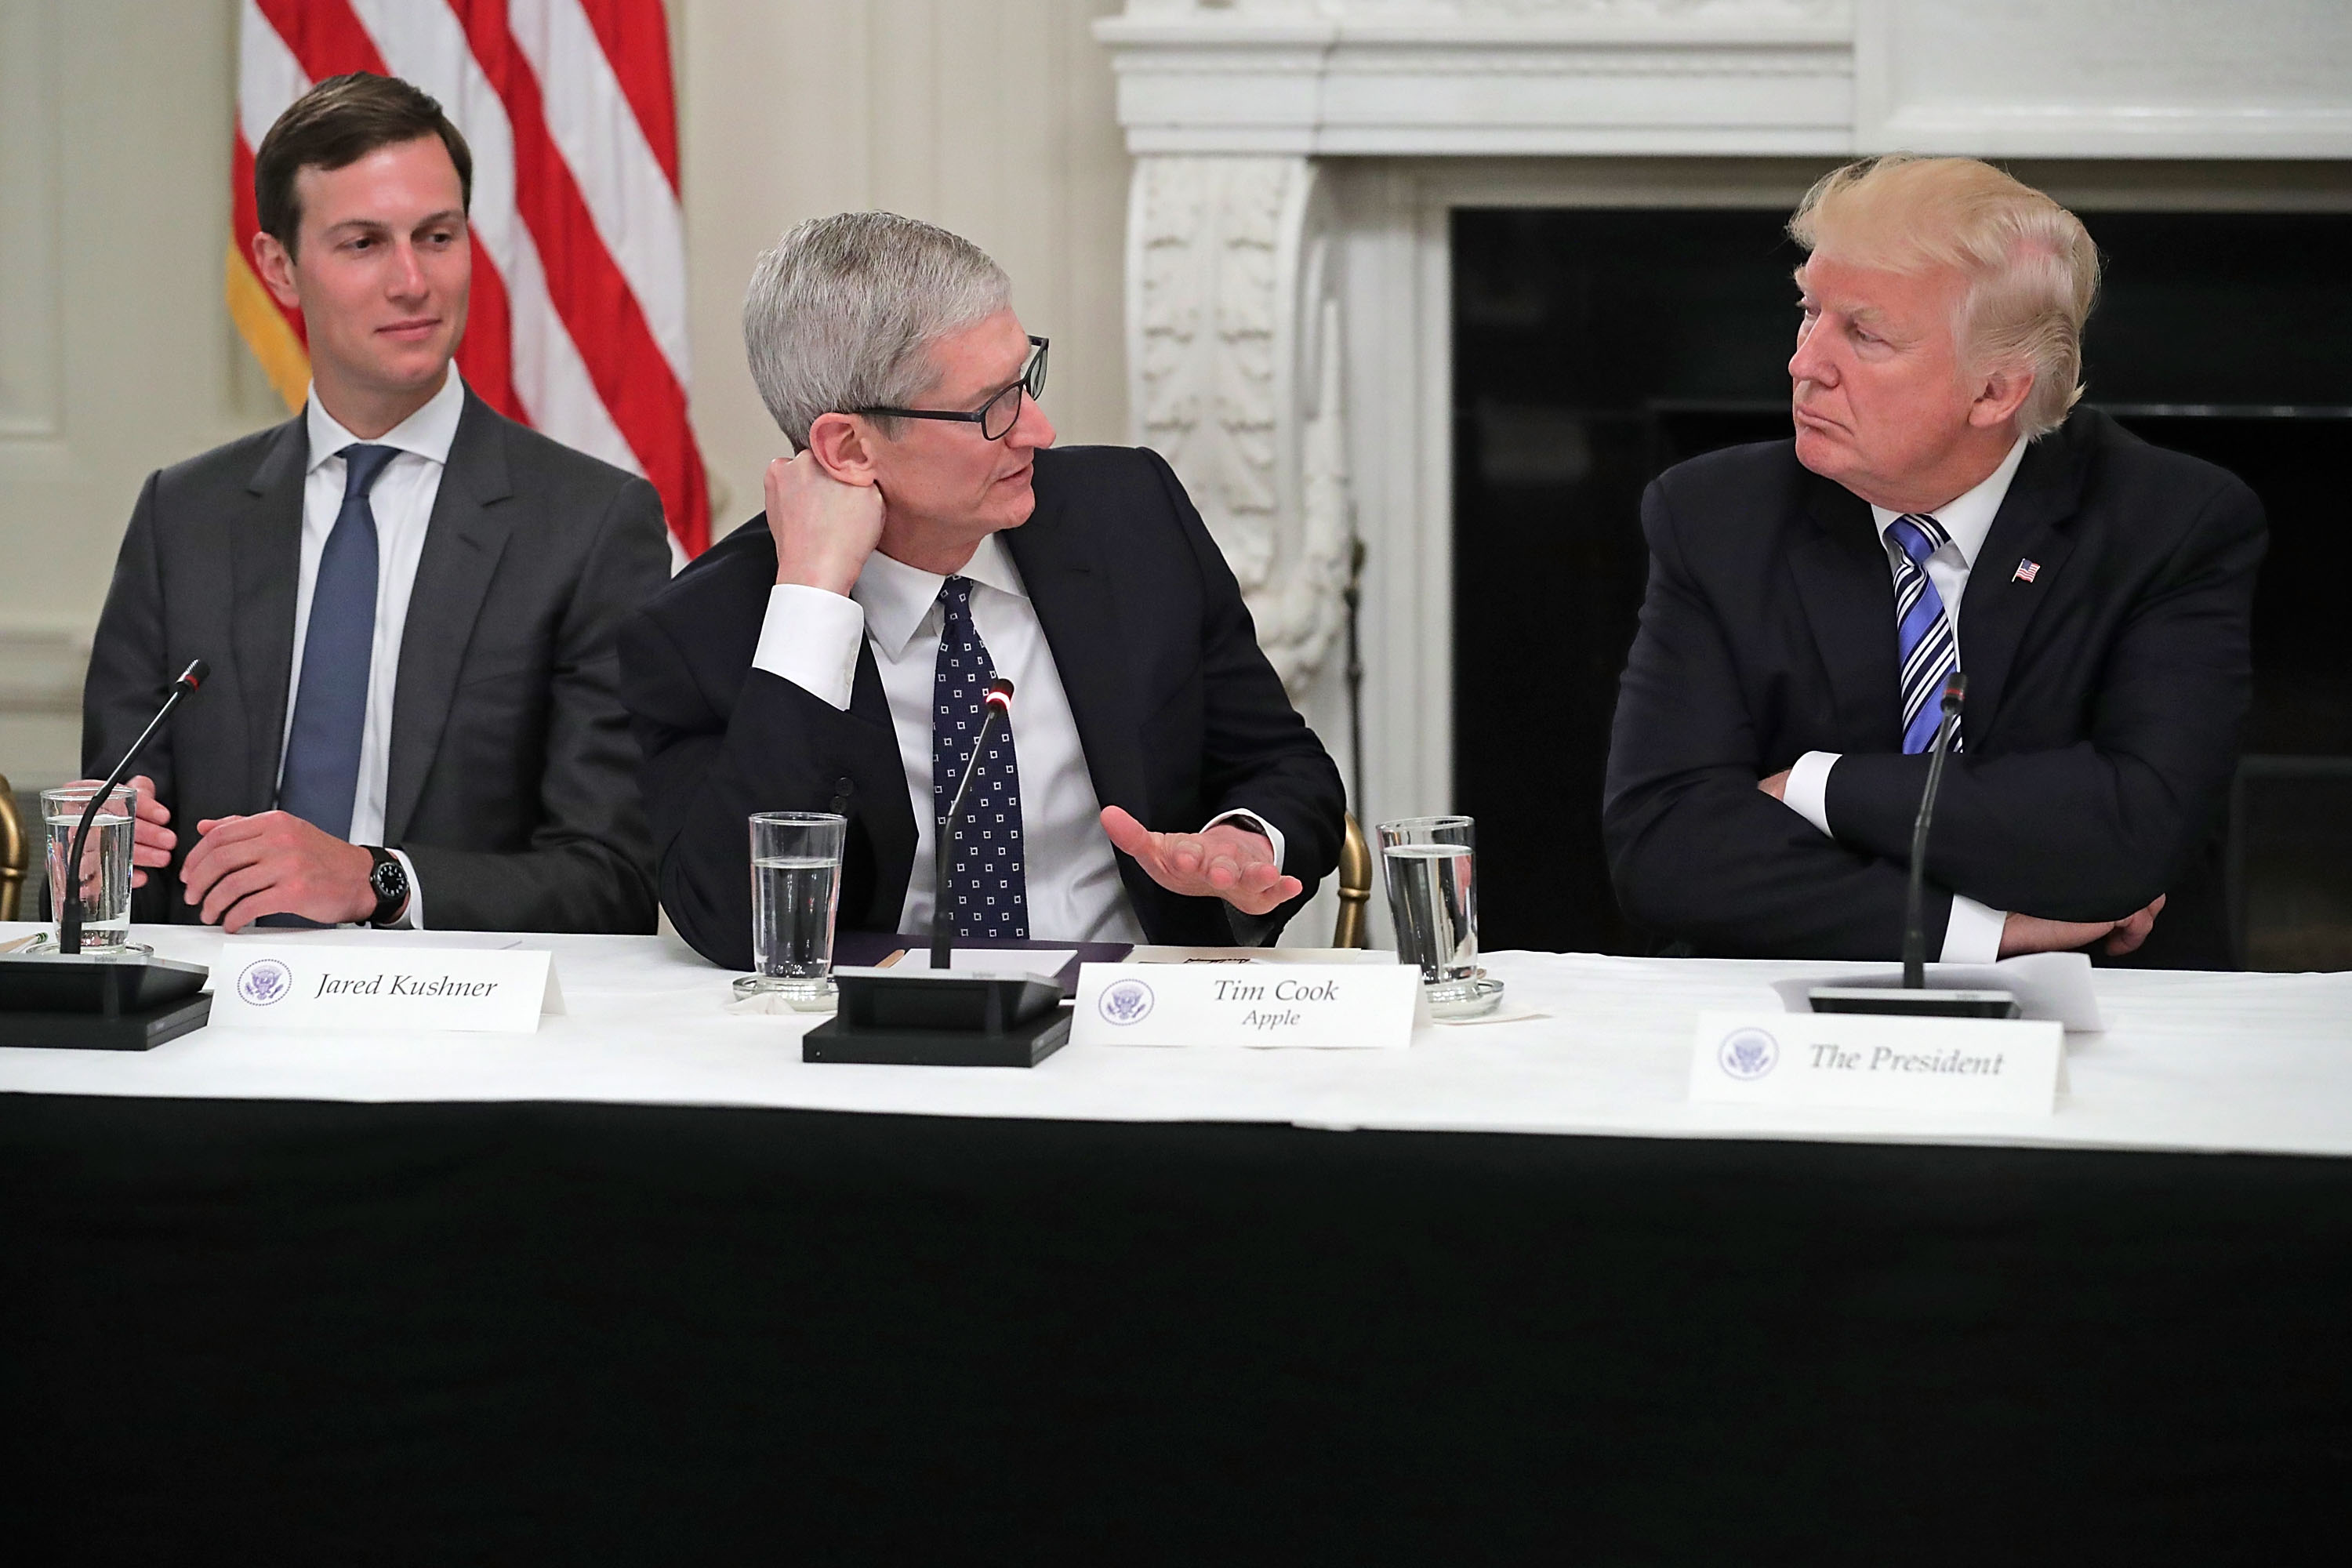 Apple CEO Tim Cook talks to President Donald Trump as the president's son-in-law, Jared Kushner, looks on.